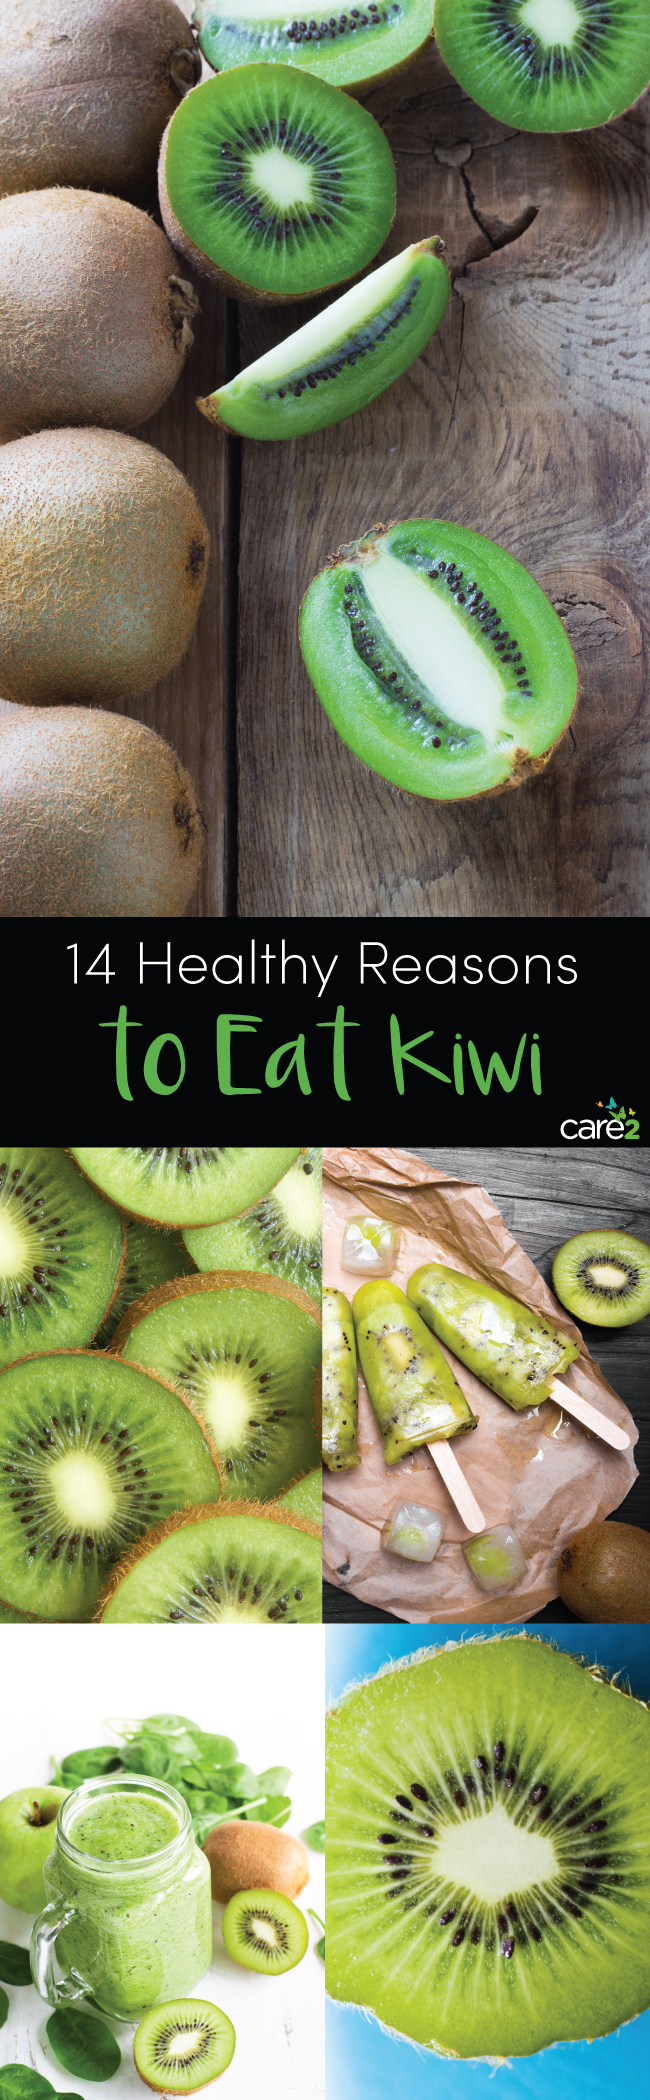 14 Healthy Reasons to Eat Kiwi